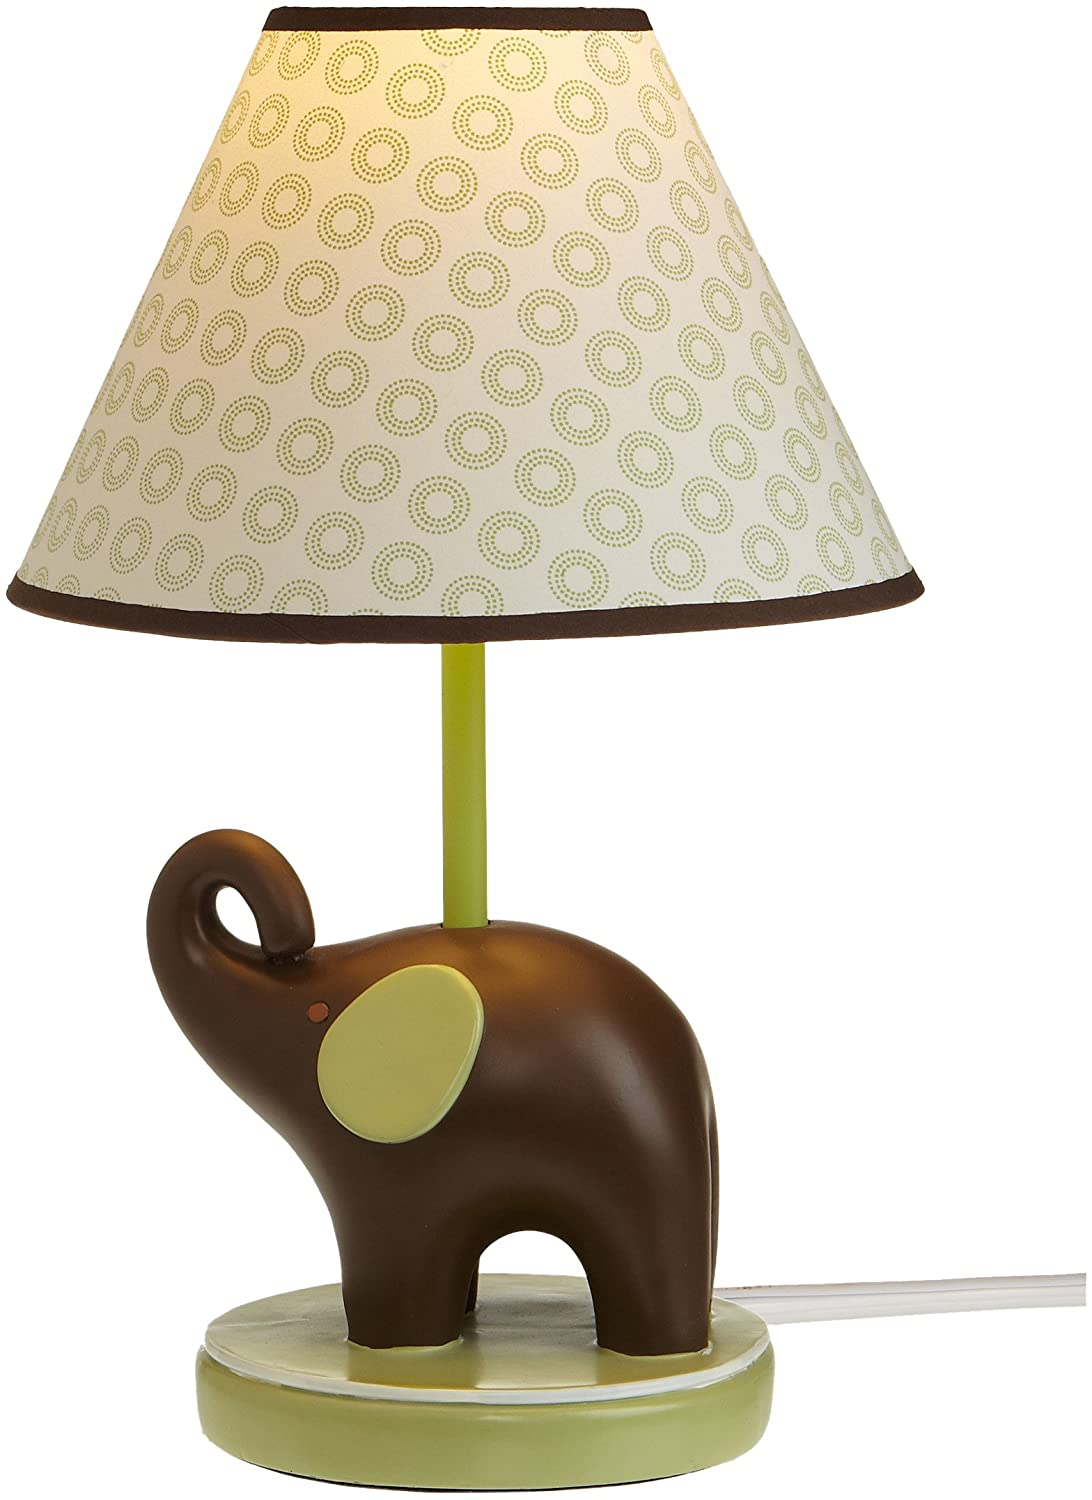 about is companion to this nursery any neutral his lppsesc starlight colored everything upturned from happy elephant body a sweet little he smooth lamp trunk